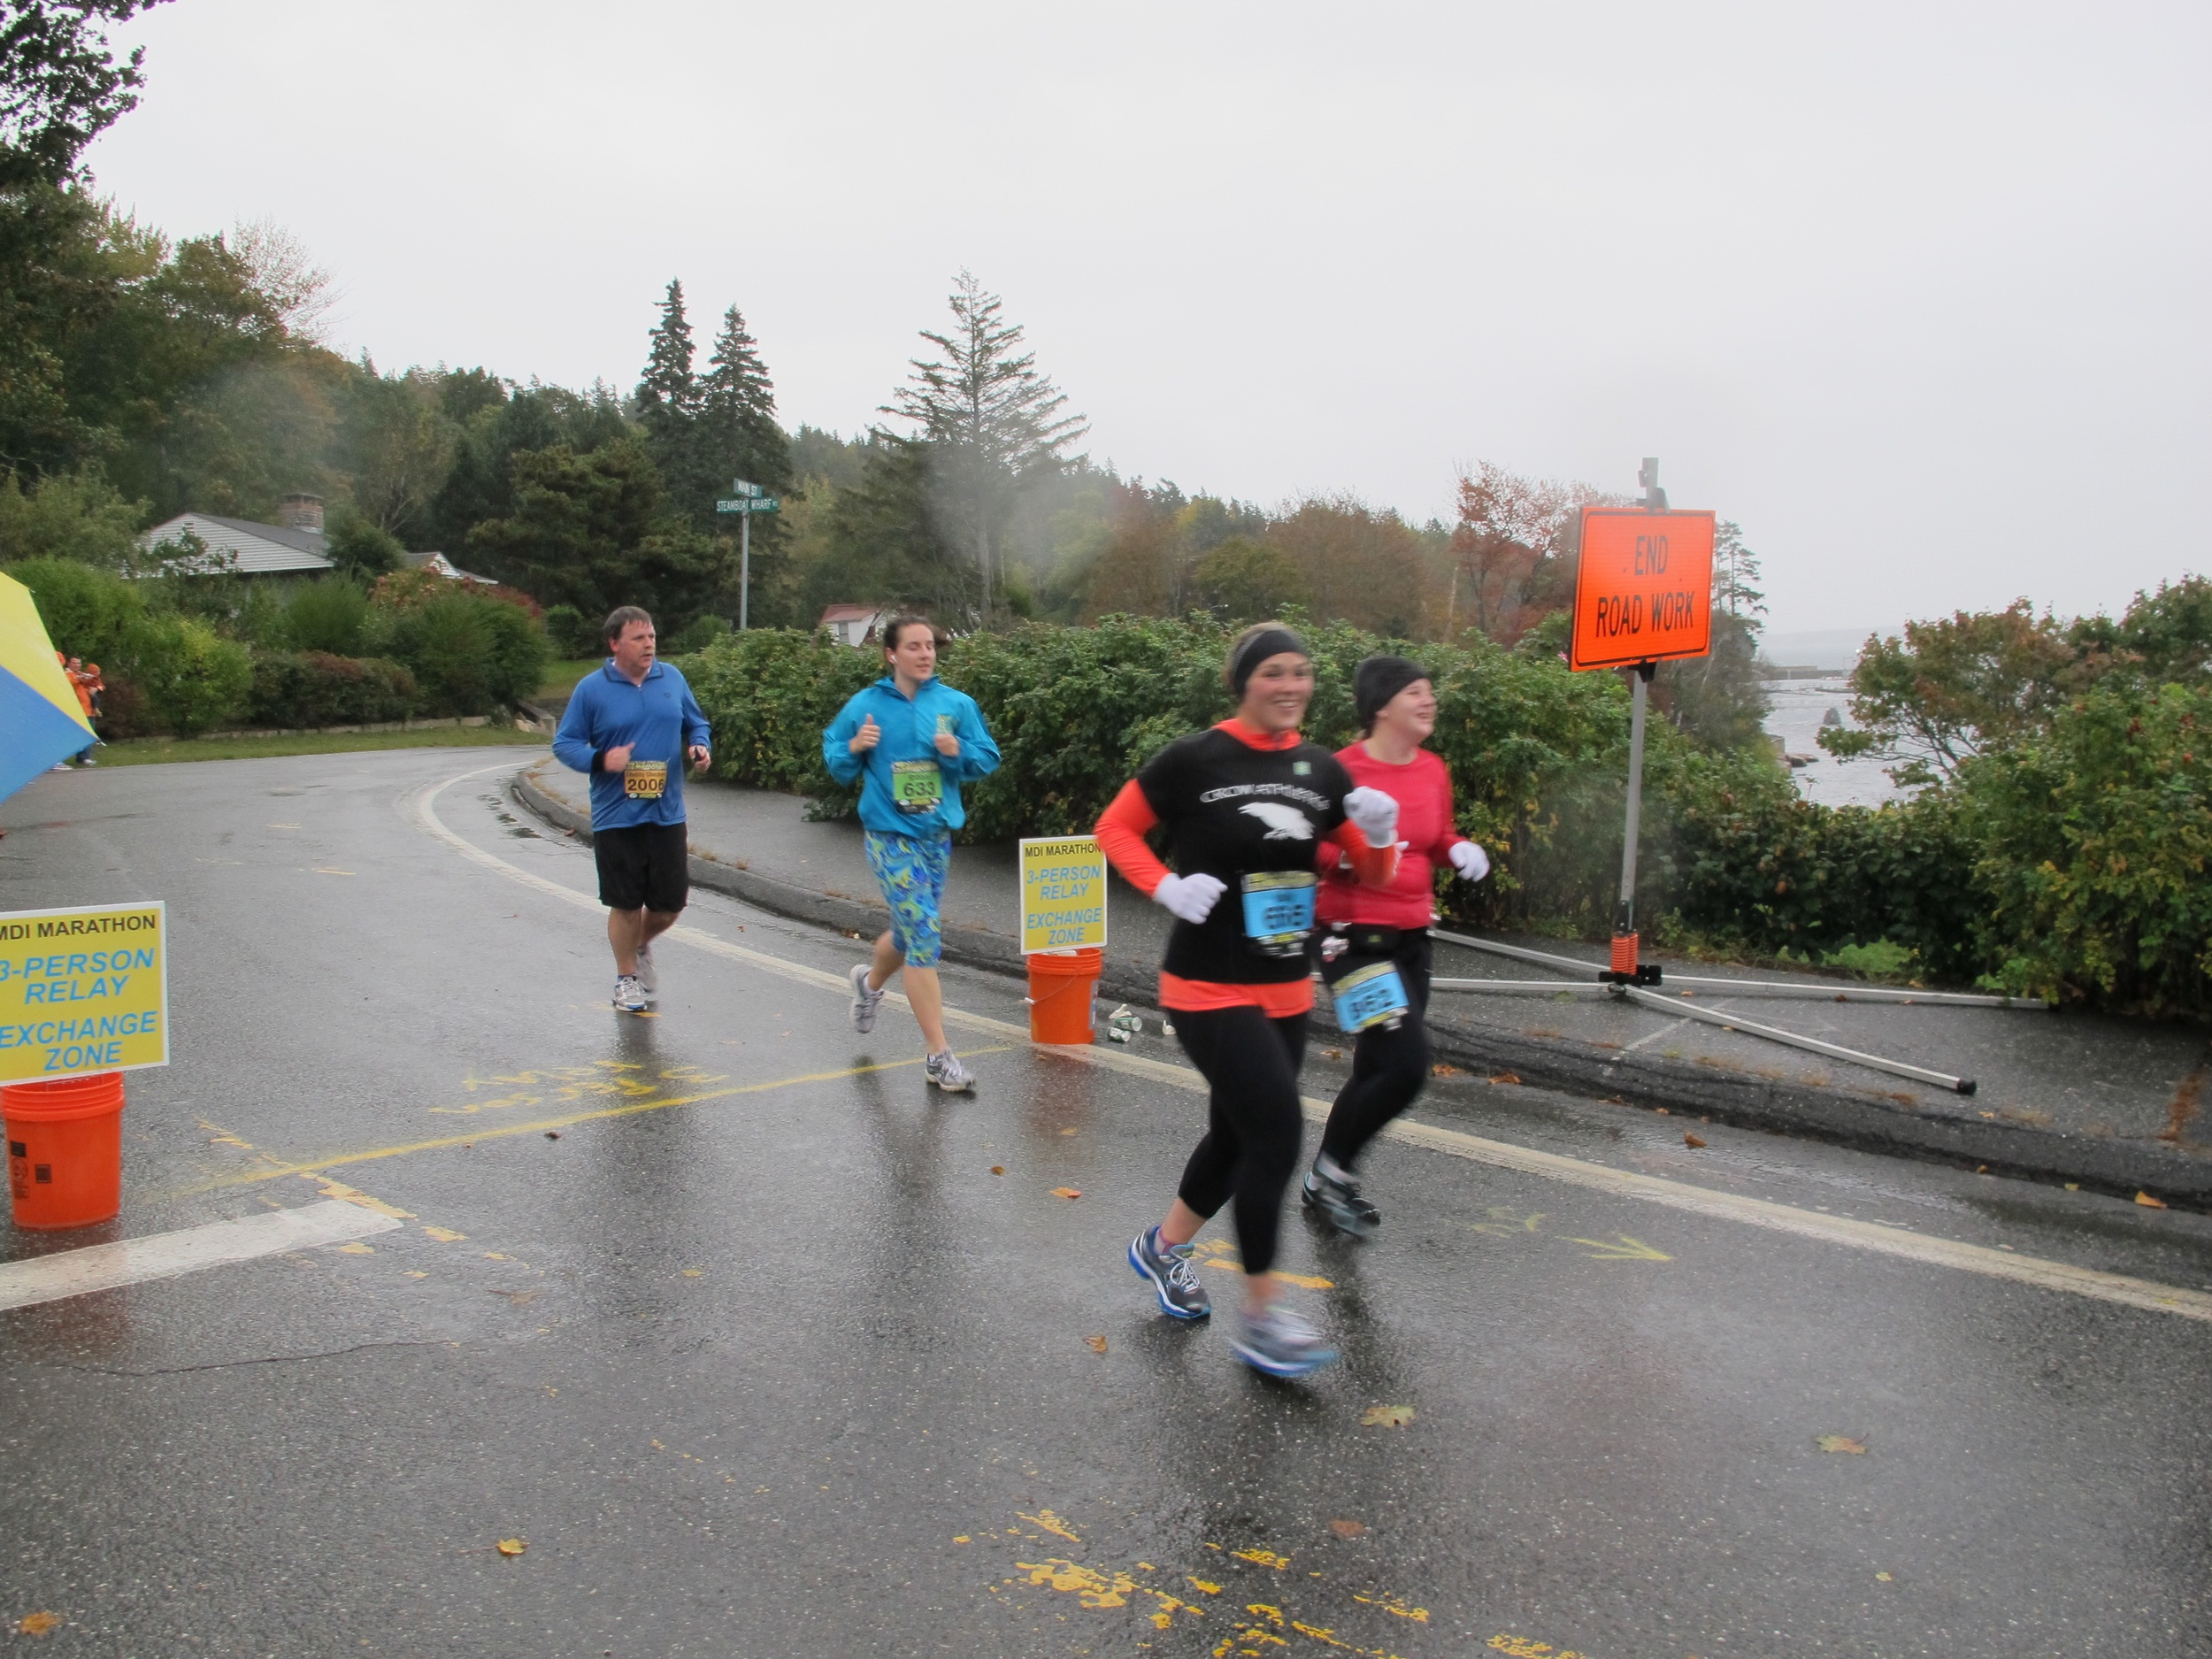 The Mount Desert Island Marathon made its way through Seal Harbor this morning in the cold rain. The runners very much appreciated our yells of encouragement.